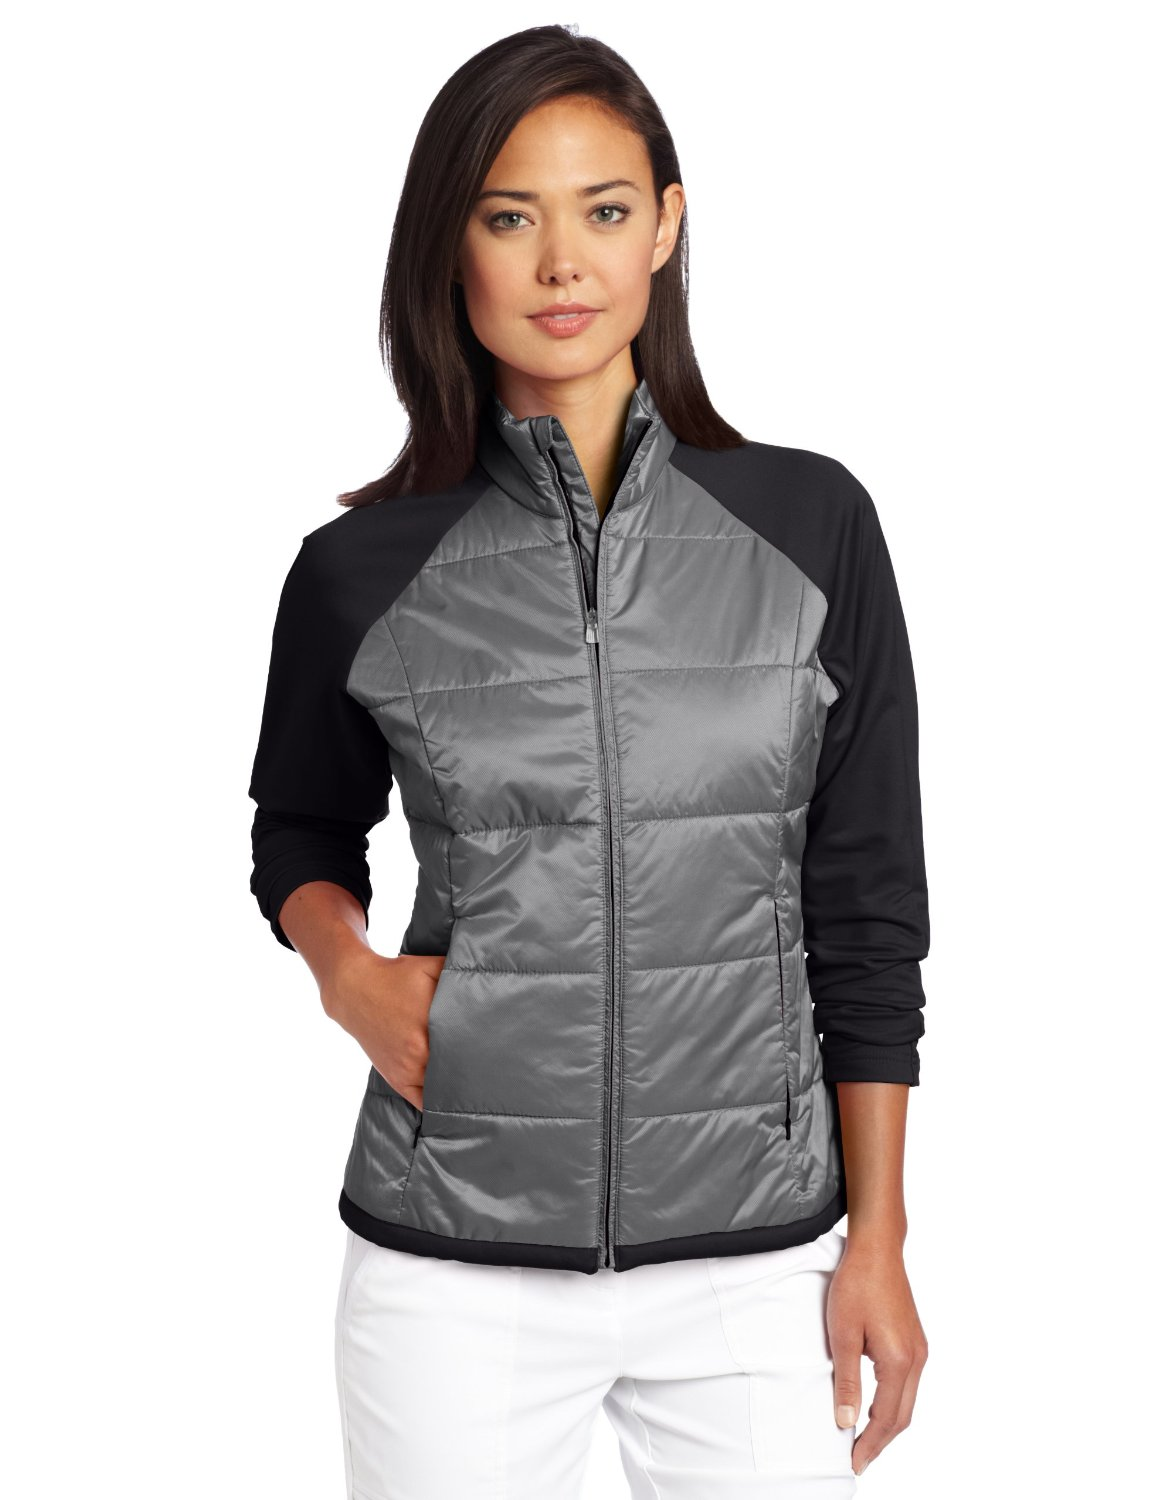 Womens Adidas Climaproof Padded Golf Jackets